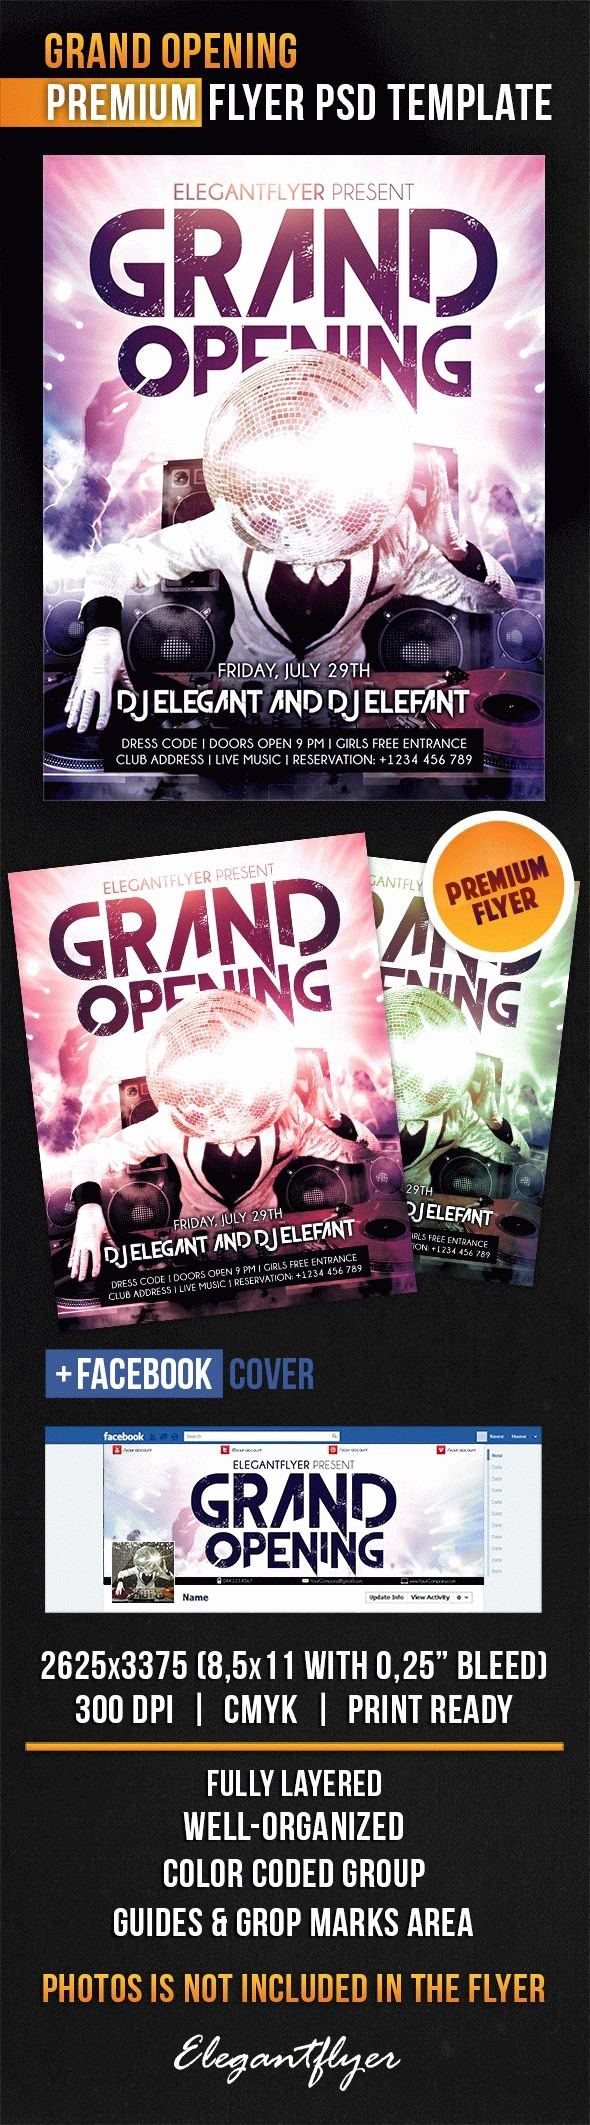 Free Grand Opening Flyer Template Lovely Dj for Grand Opening Flyer Template – by Elegantflyer